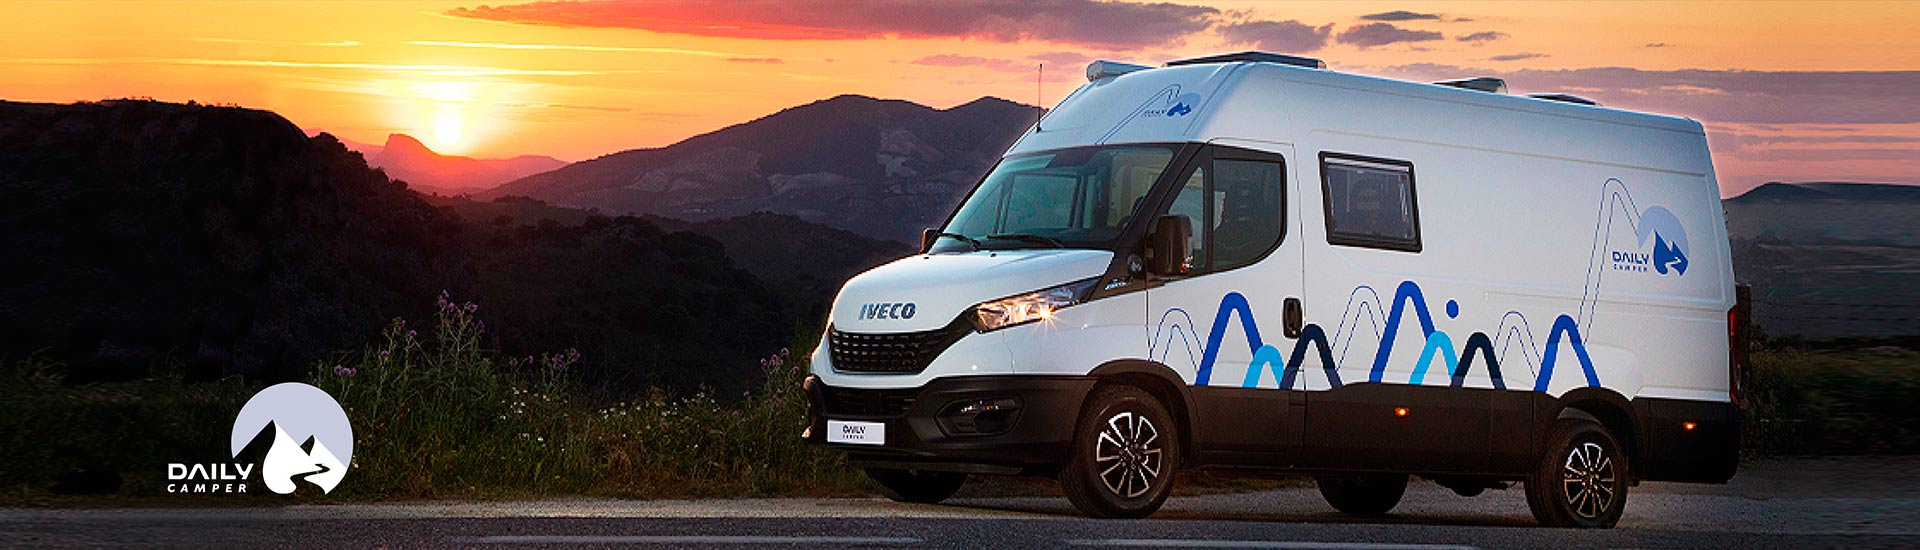 Daily camper iveco